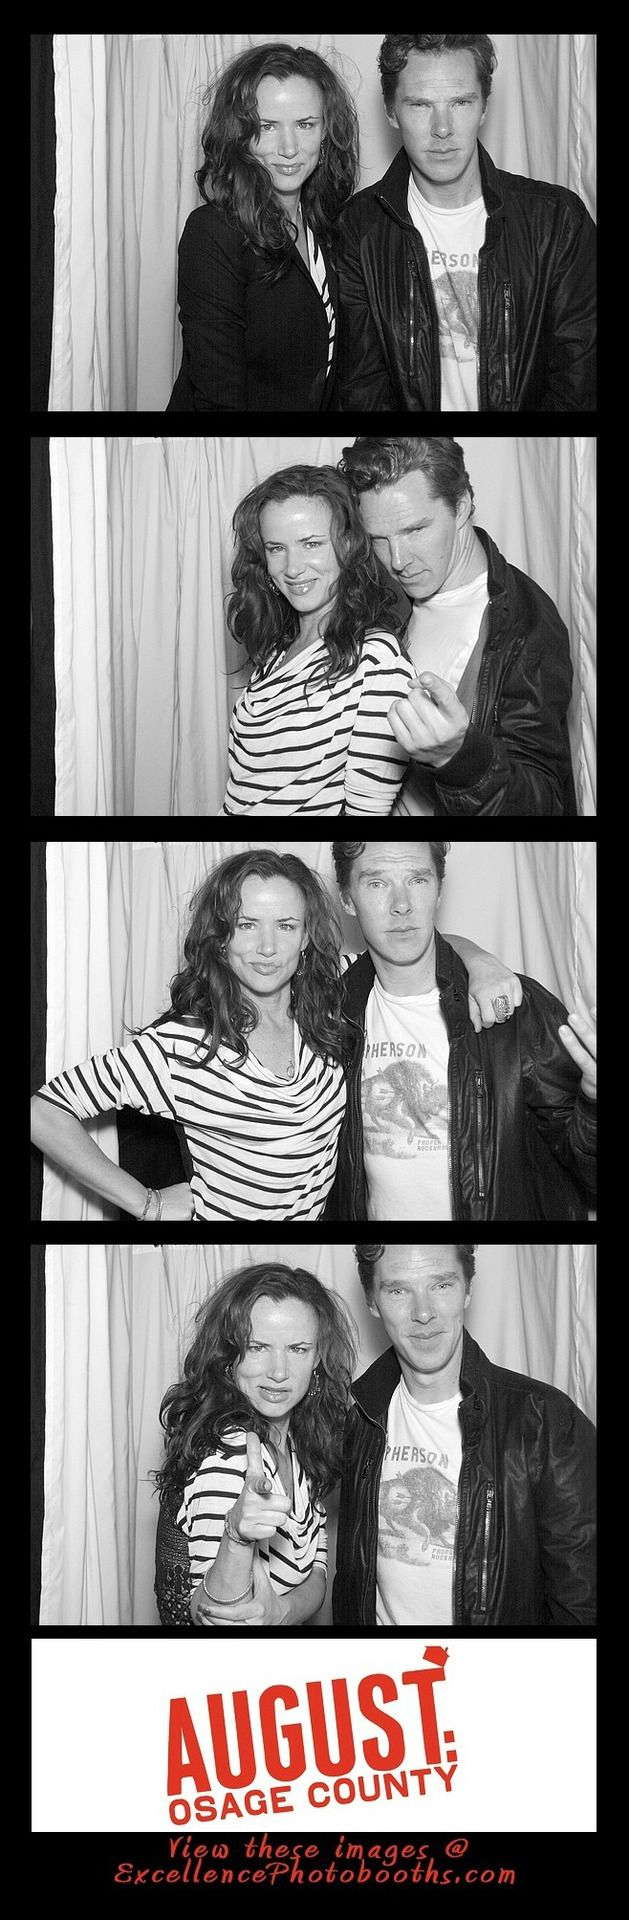 juliette lewis and benedict cumberbatch @ august: osage county wrap party x  what a tart!!! absolutely love these!!!